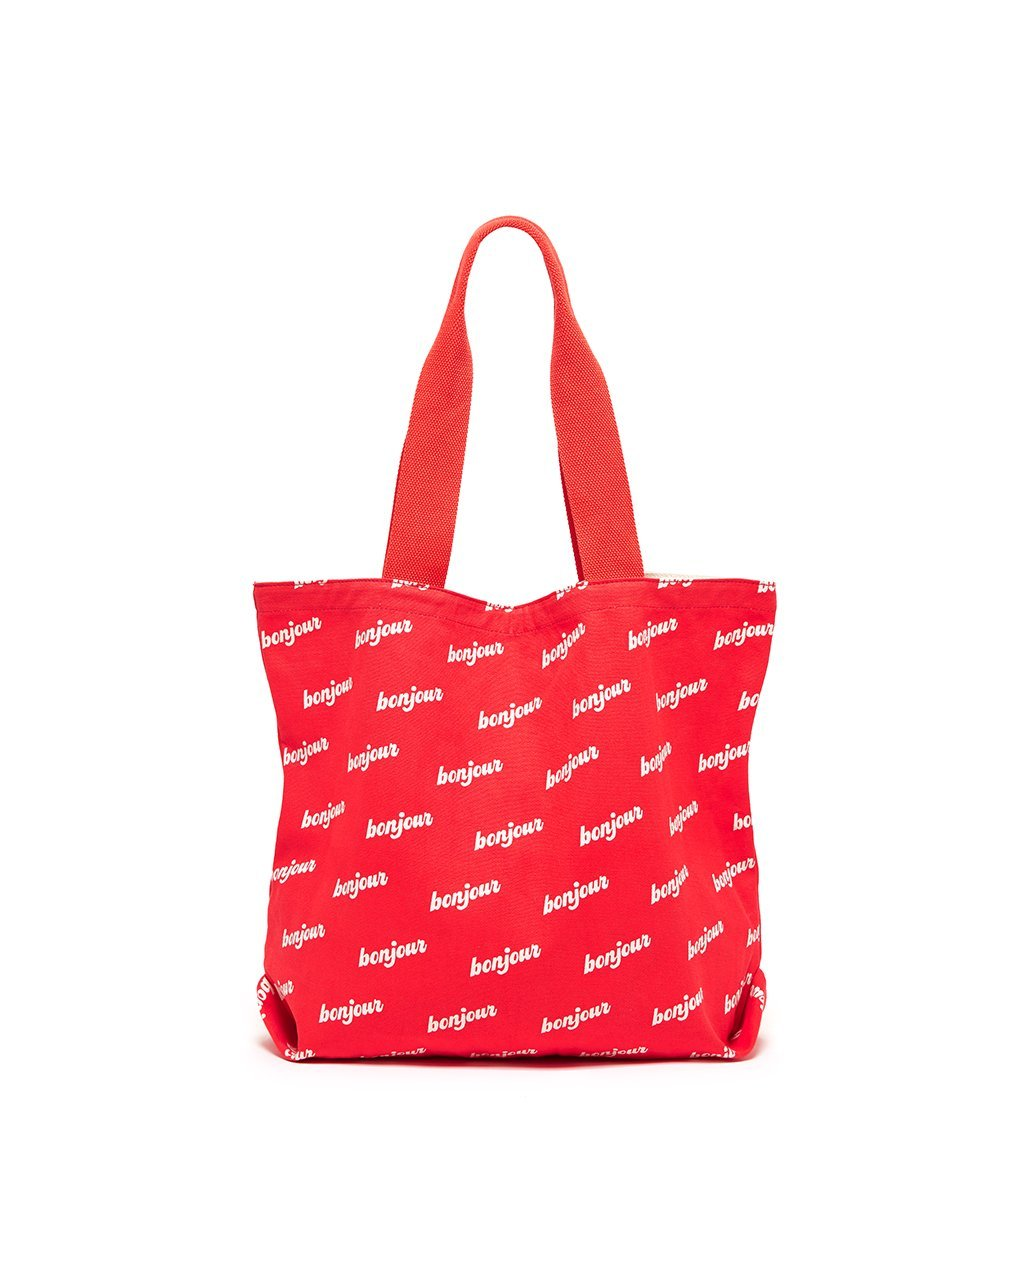 Ban.do Bonjour Canvas Tote Bag